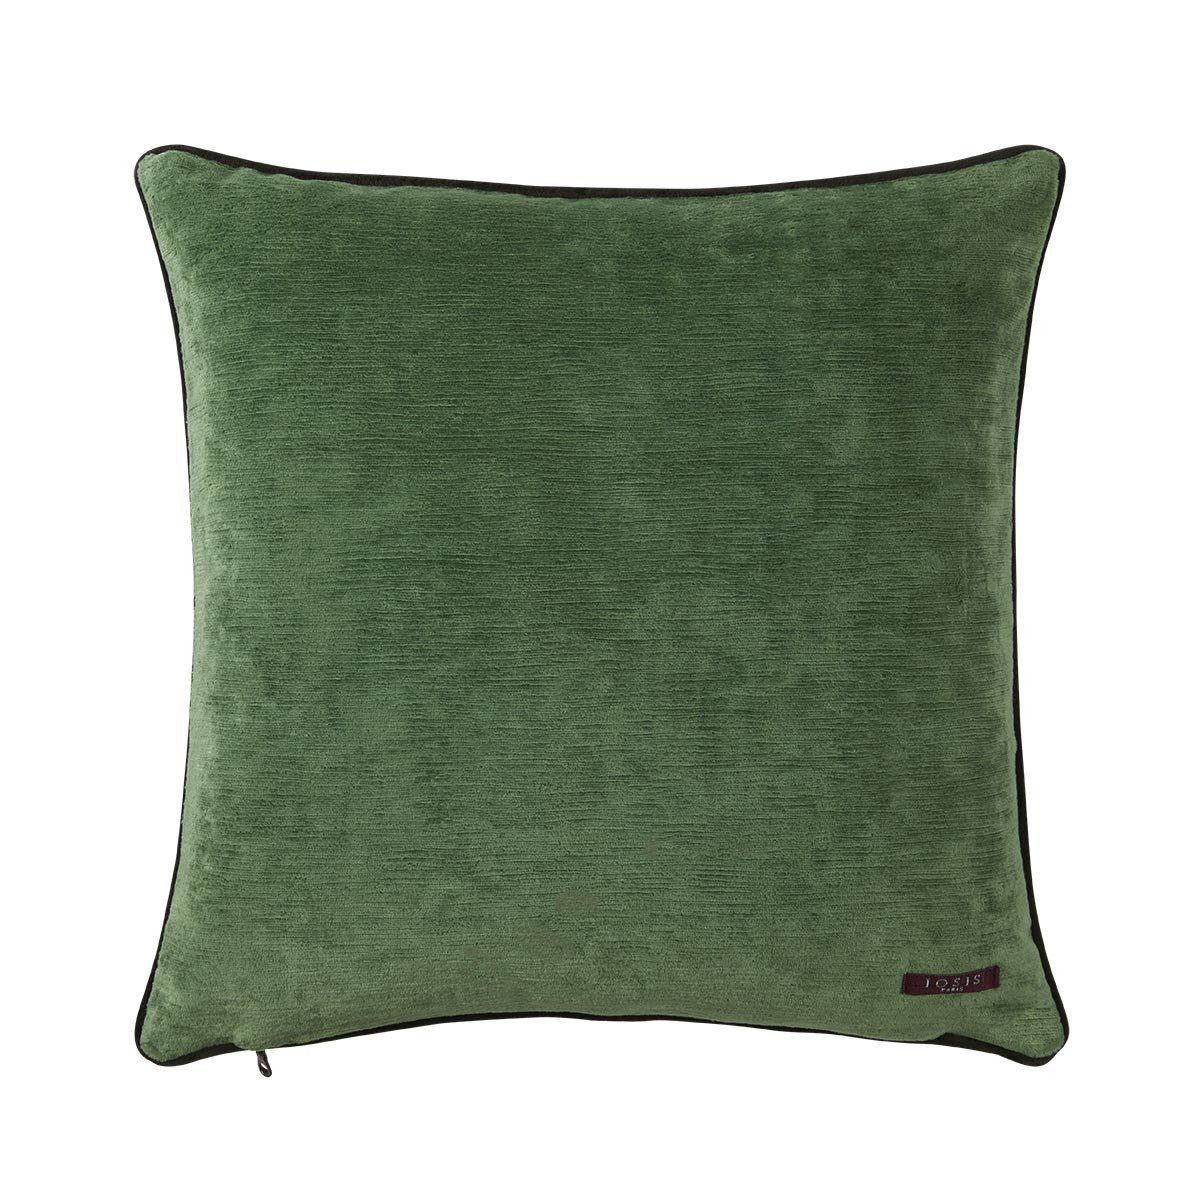 Fig Linens - Boromee Menthe Decorative Pillow by Iosis